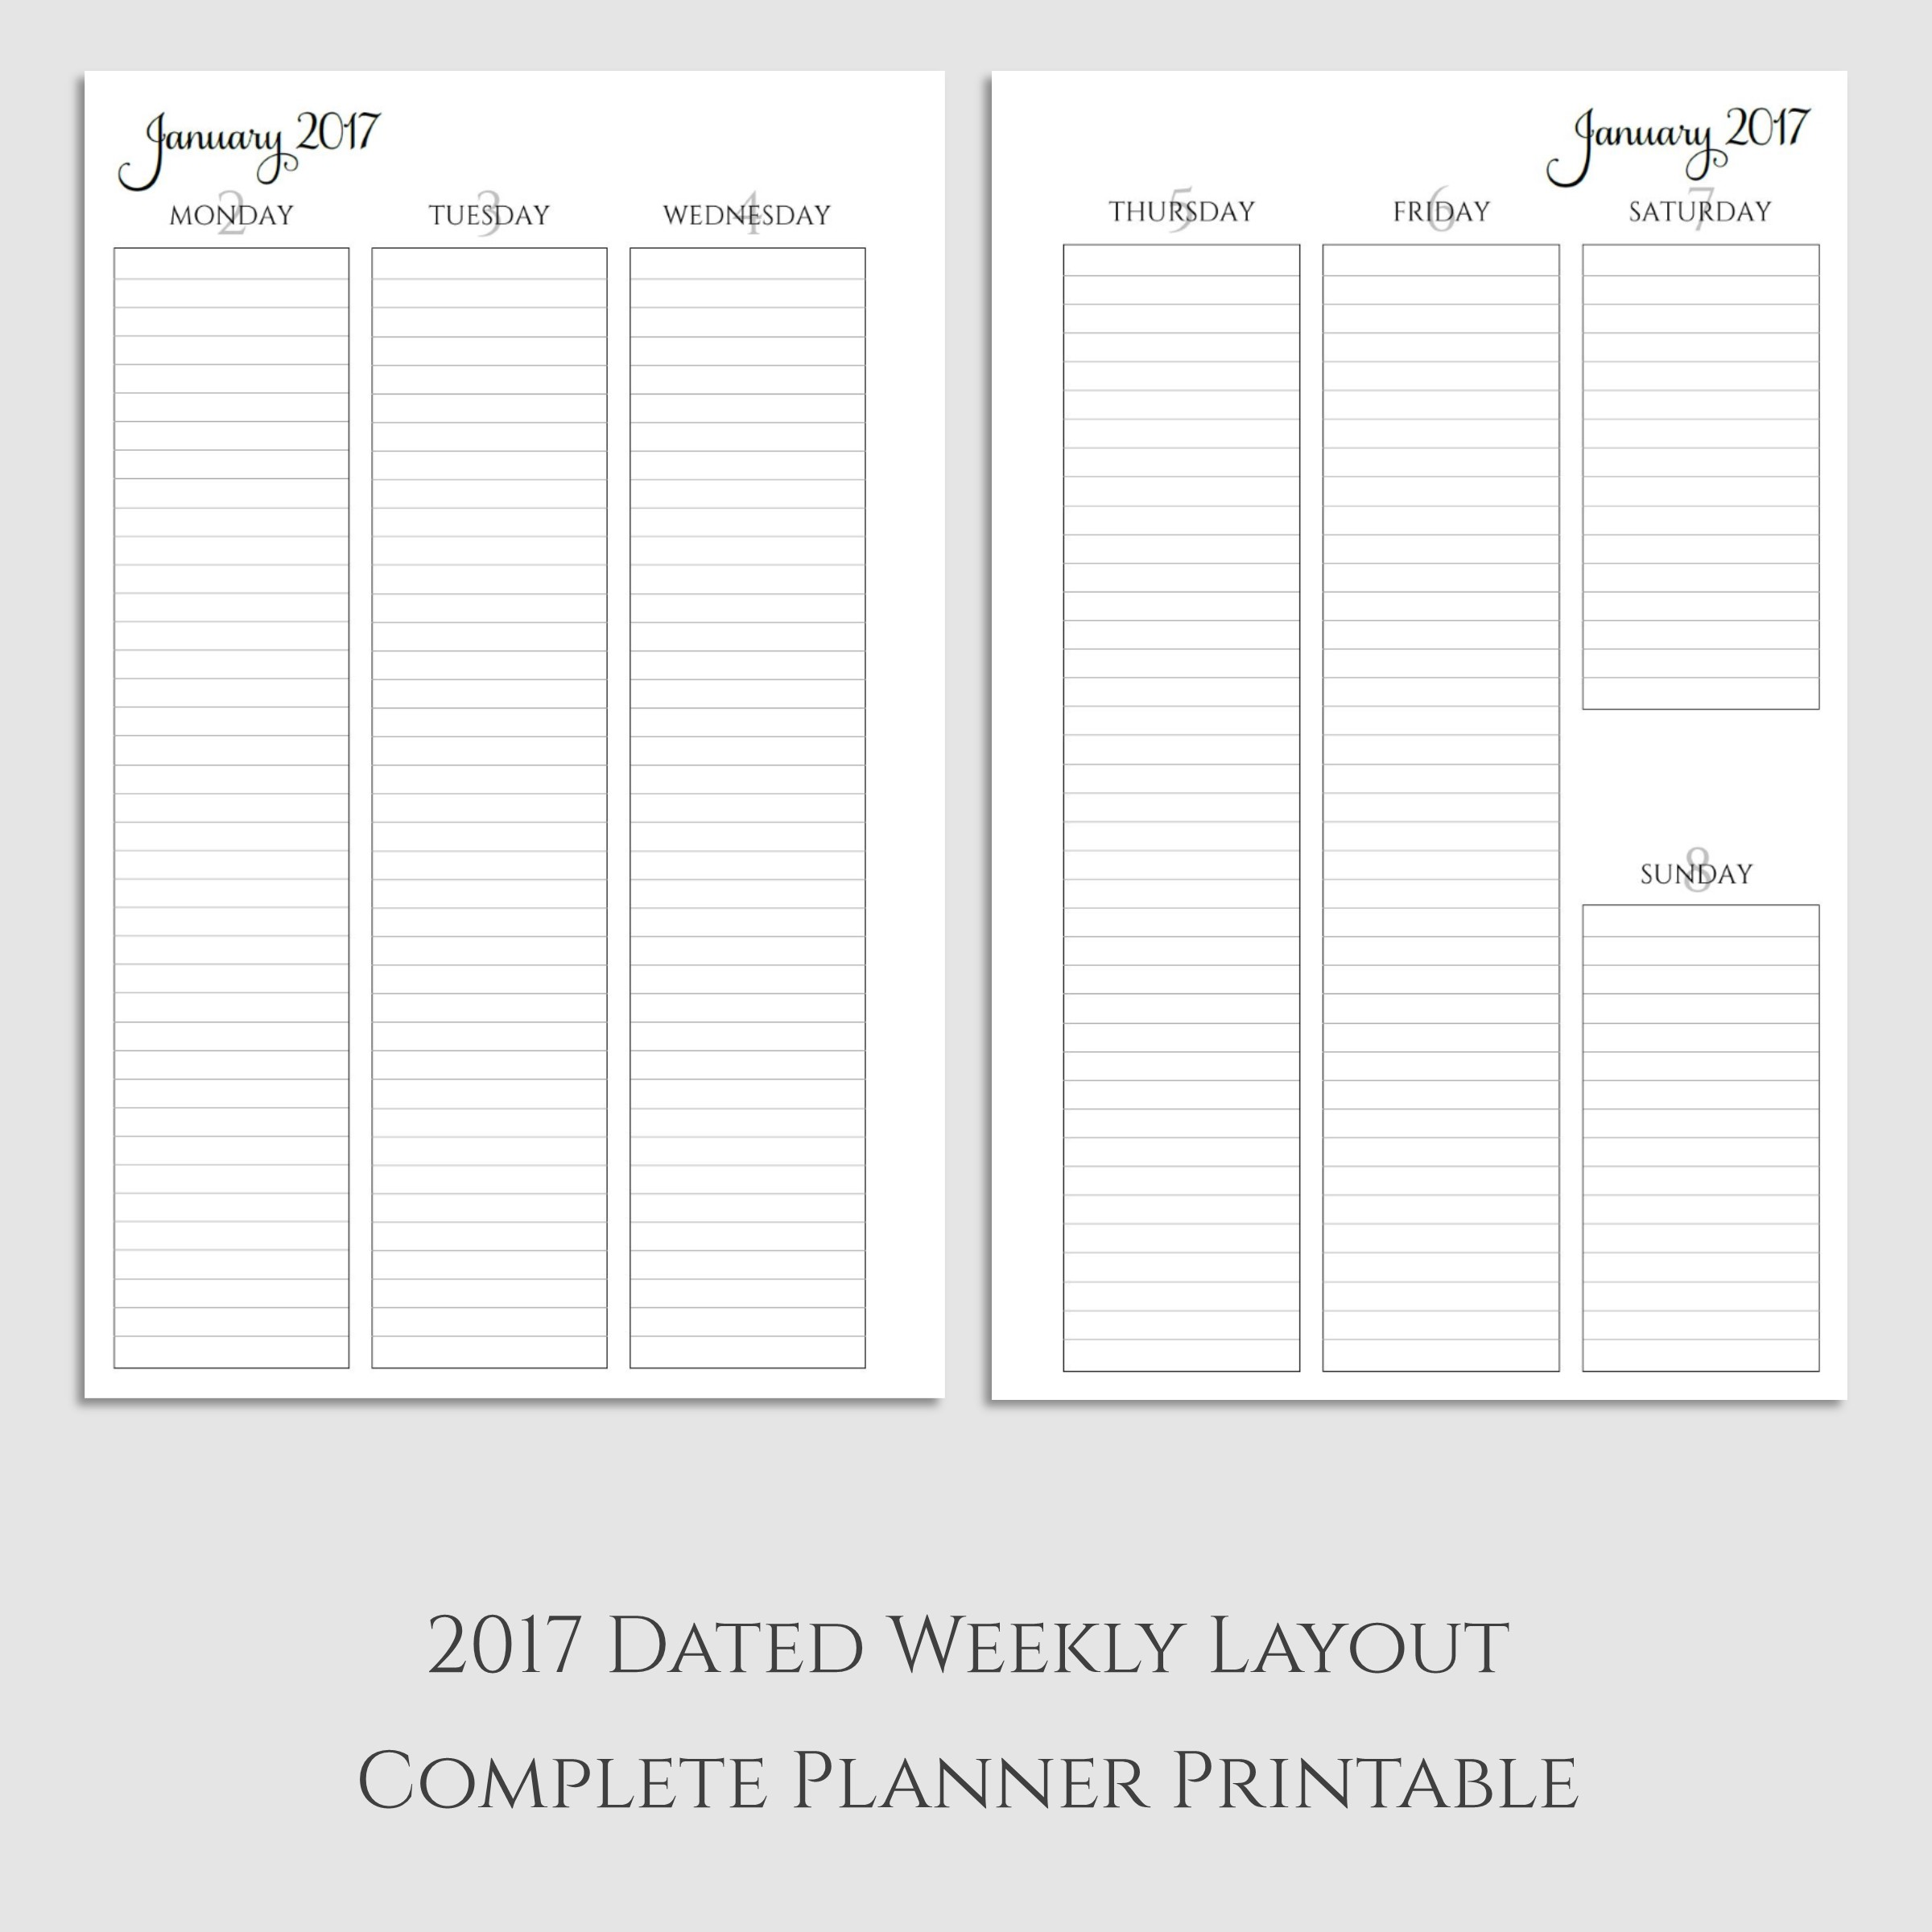 Complete 2017 Weekly Vertical Lined Planner Printable